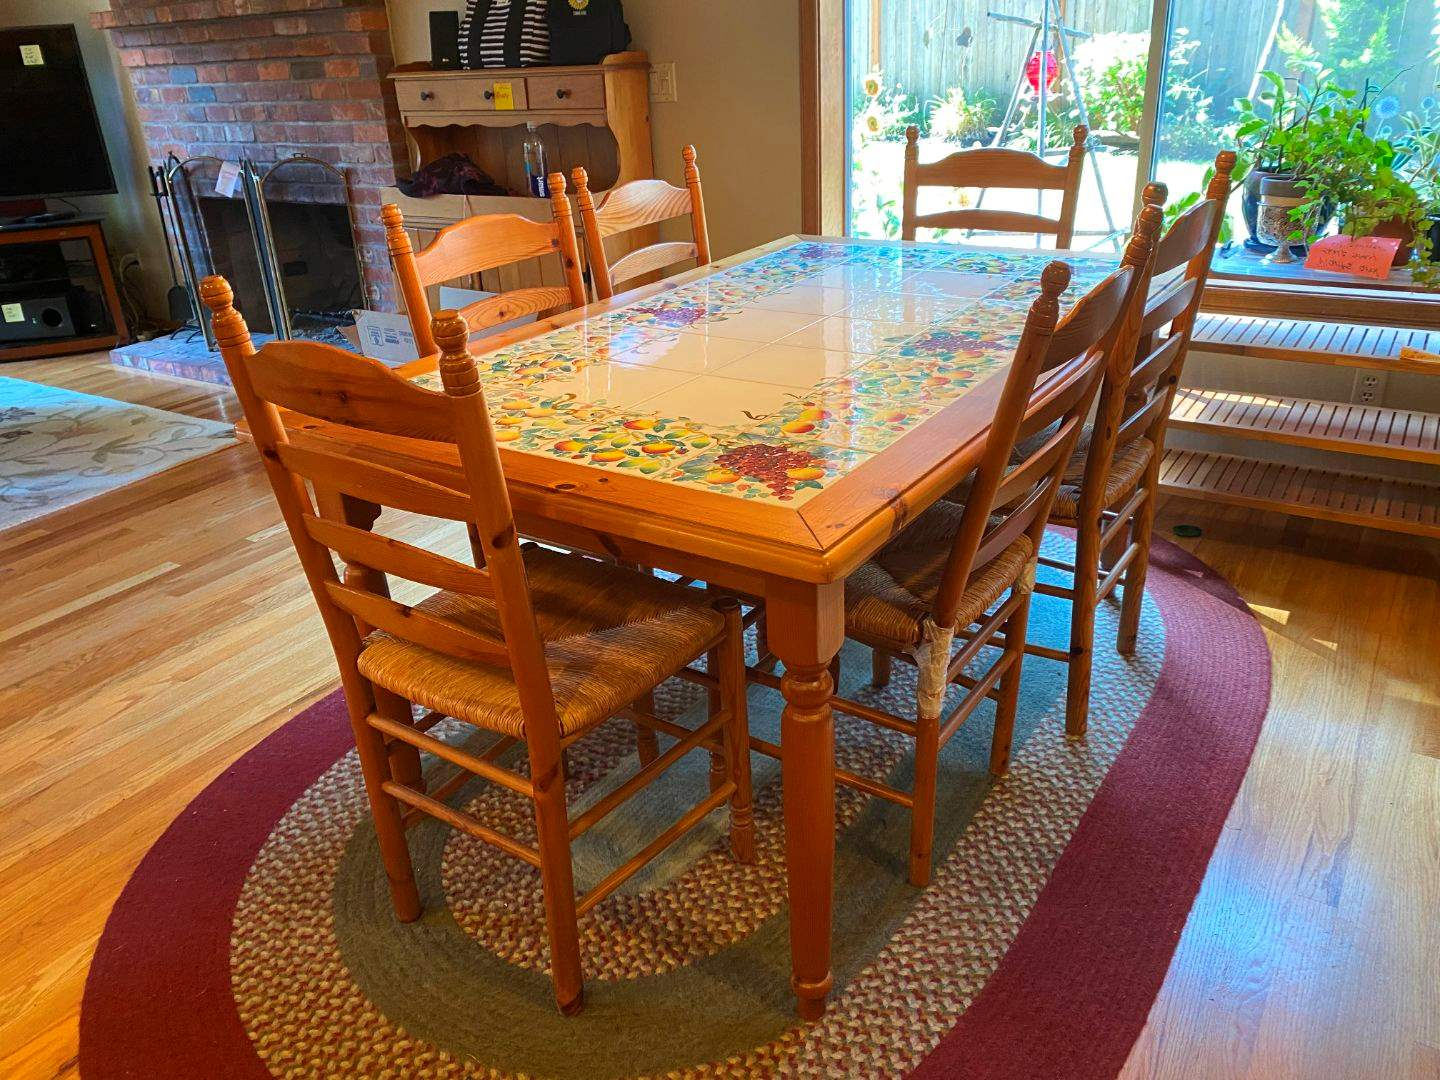 Lot # 32 - Nice Tile Topped Wood Dining Table w/6 Rush Chairs - (Made by Ceramiche Nicola Fasano Grottaglie from Italy). (main image)